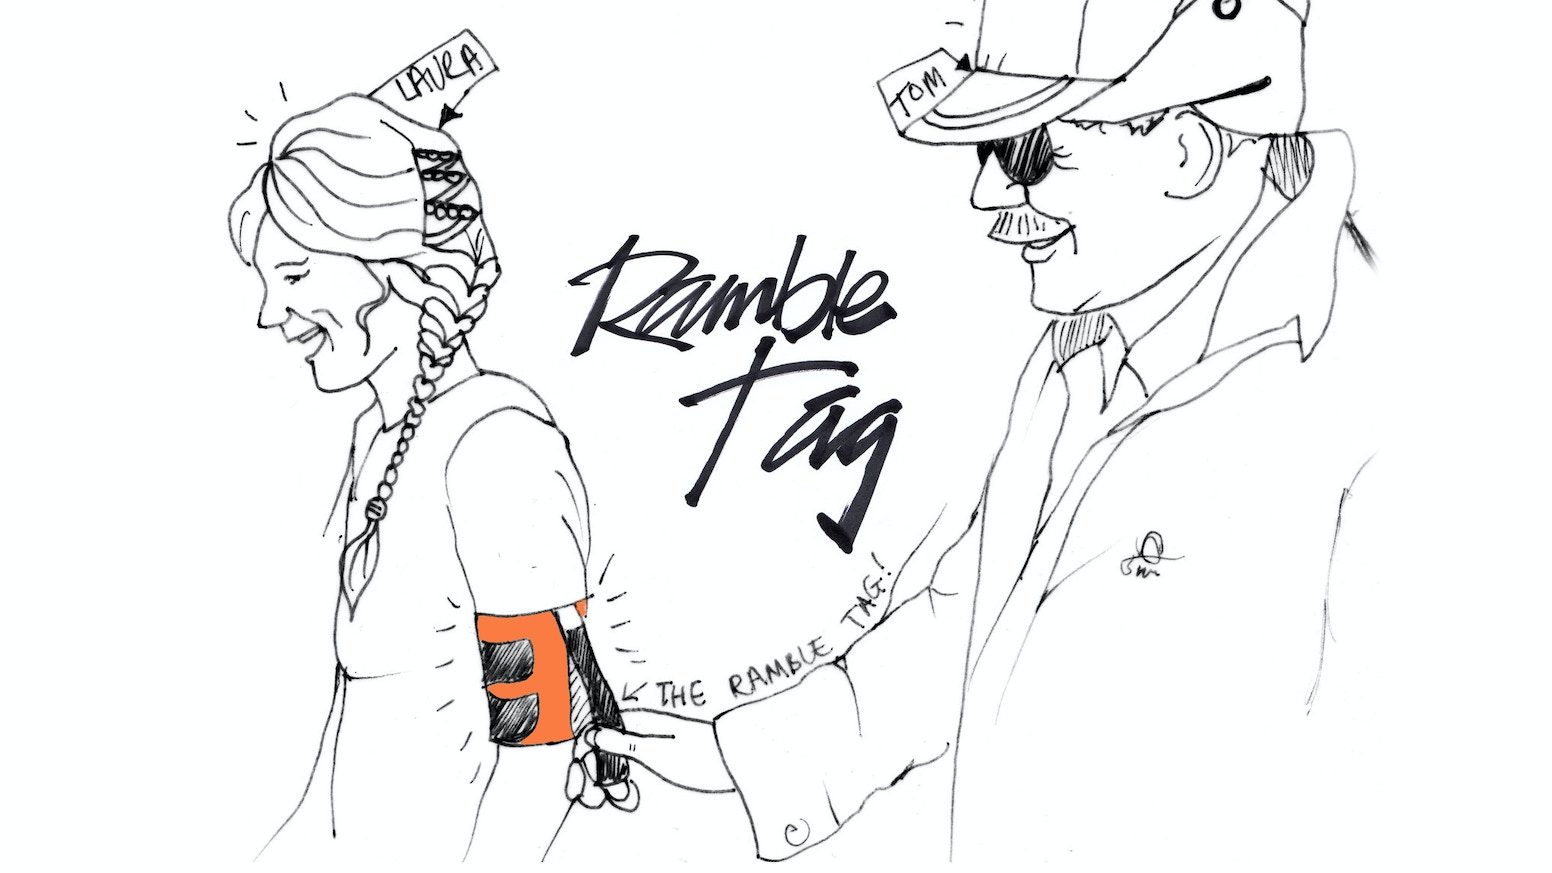 The Ramble Tag is designed specifically for visually impaired people, to improve the experience of guided walking and sports.. .It is now for sale at www.rambletag.co.uk - FREE WORLDWIDE POSTAGE.